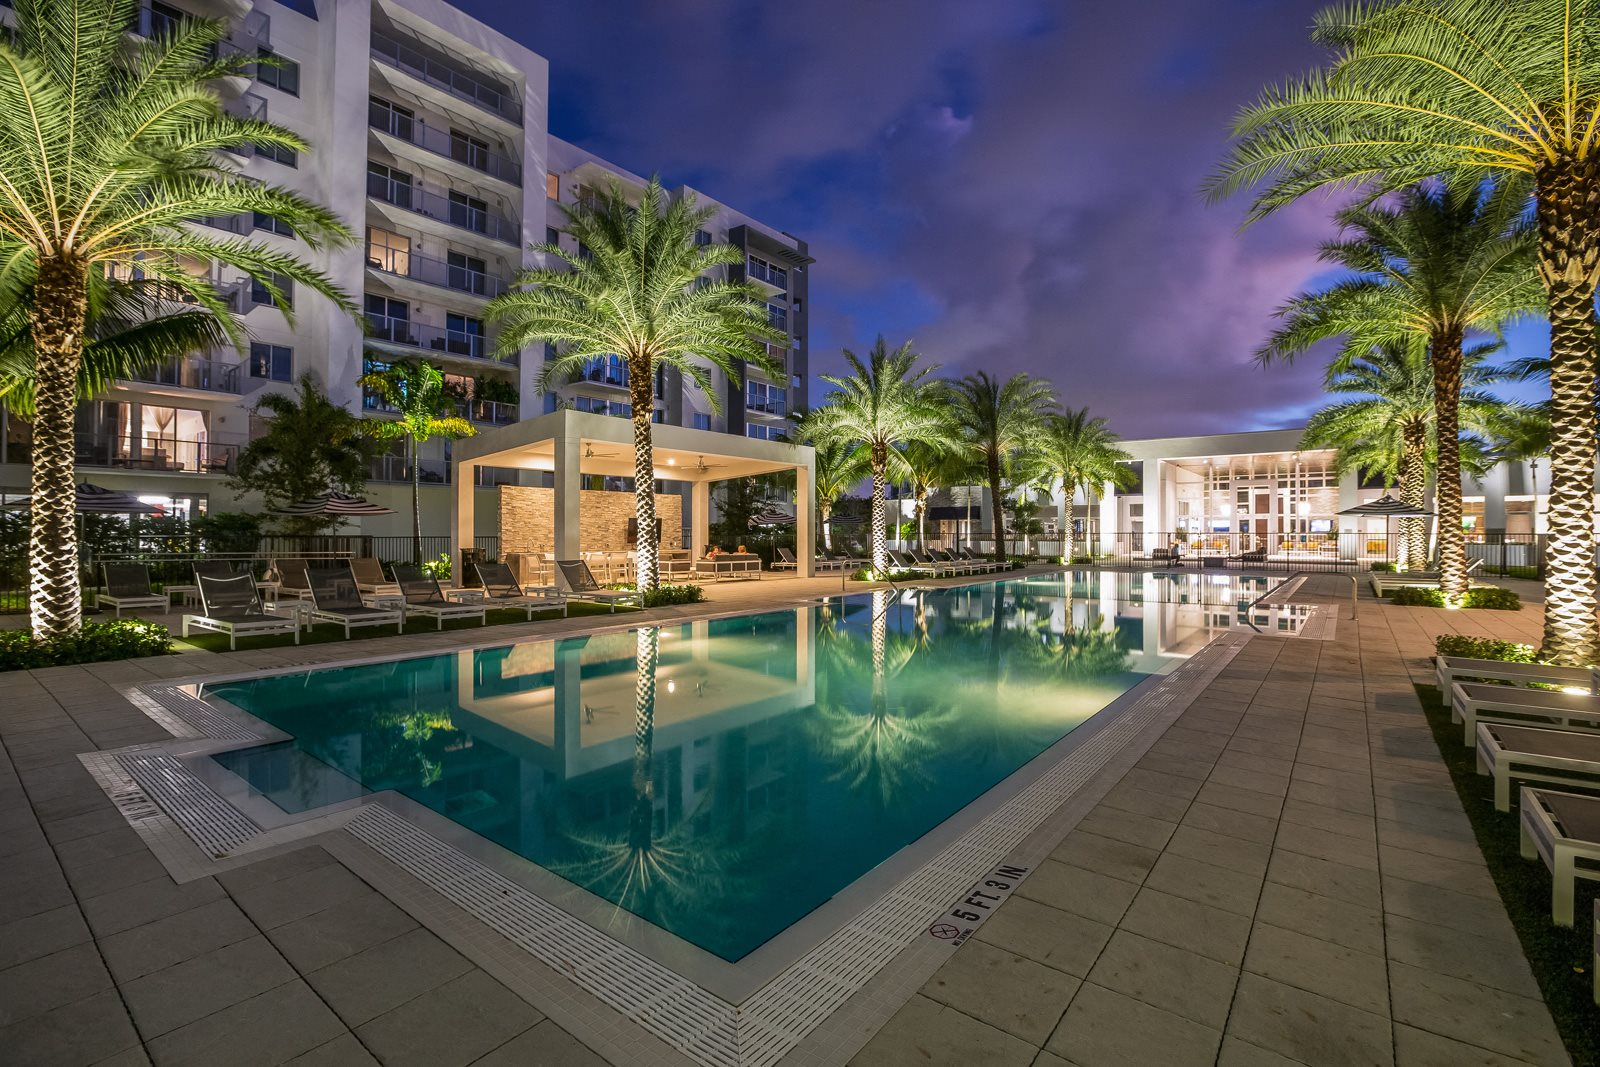 Pool Side Relaxing Area at Allure by Windsor, Boca Raton, FL